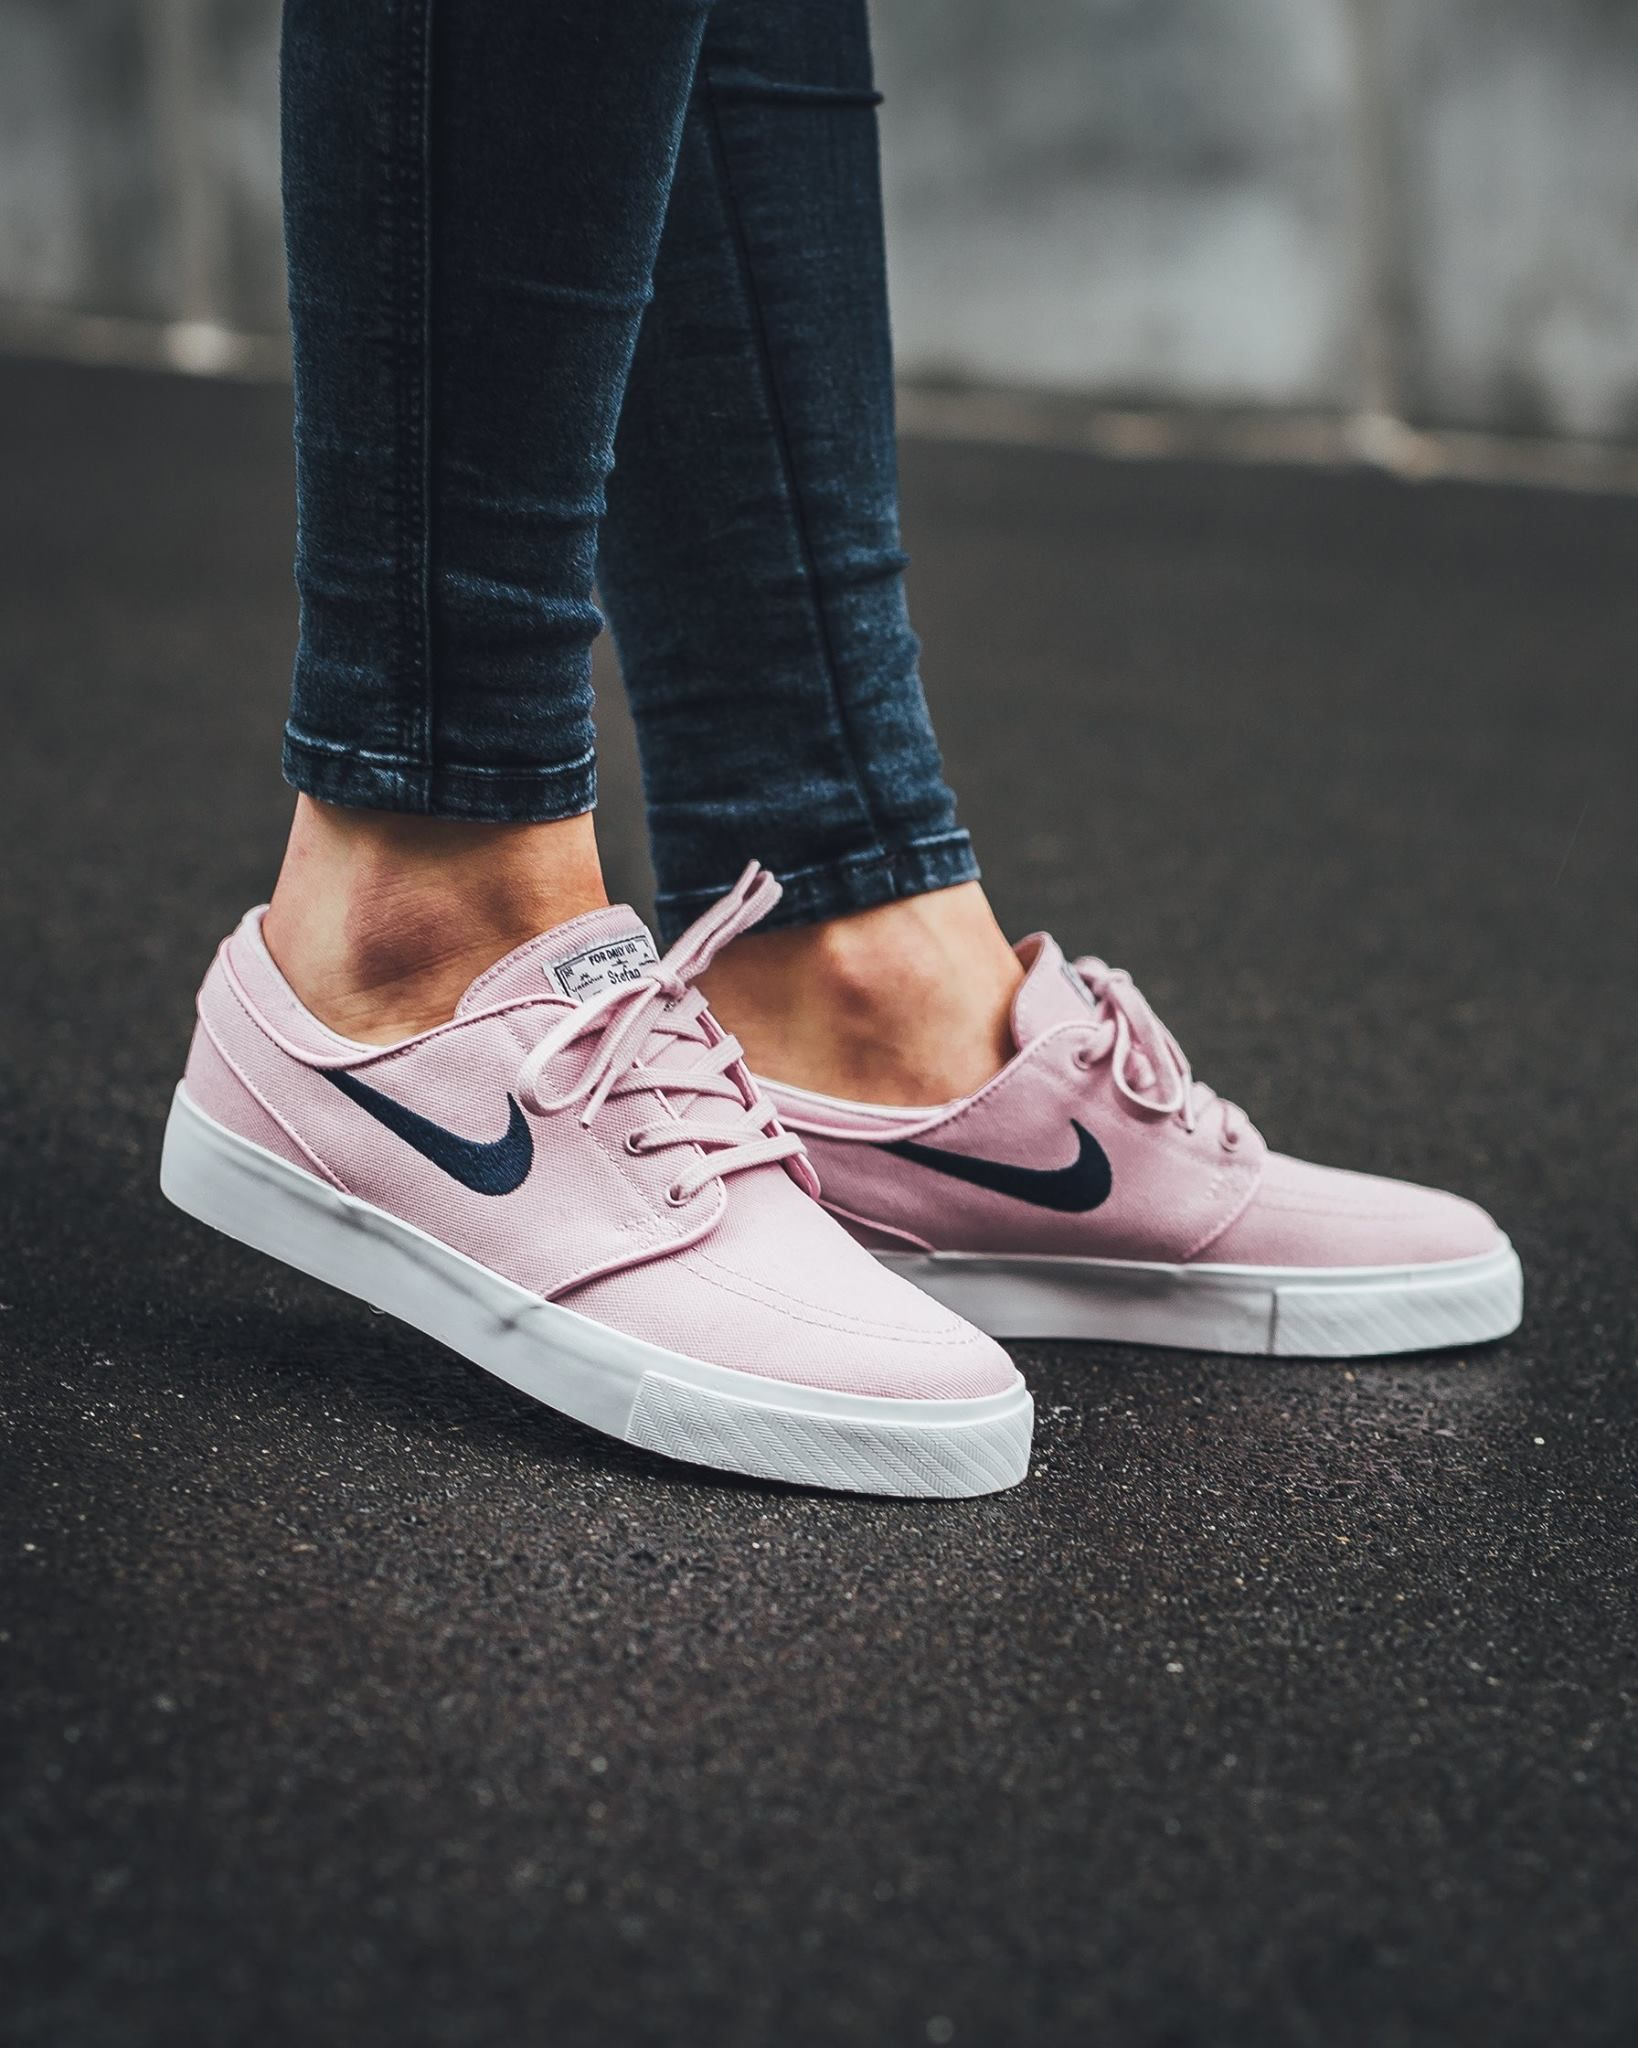 Eileen Reade on Twitter. Cute Nike ShoesPink ...